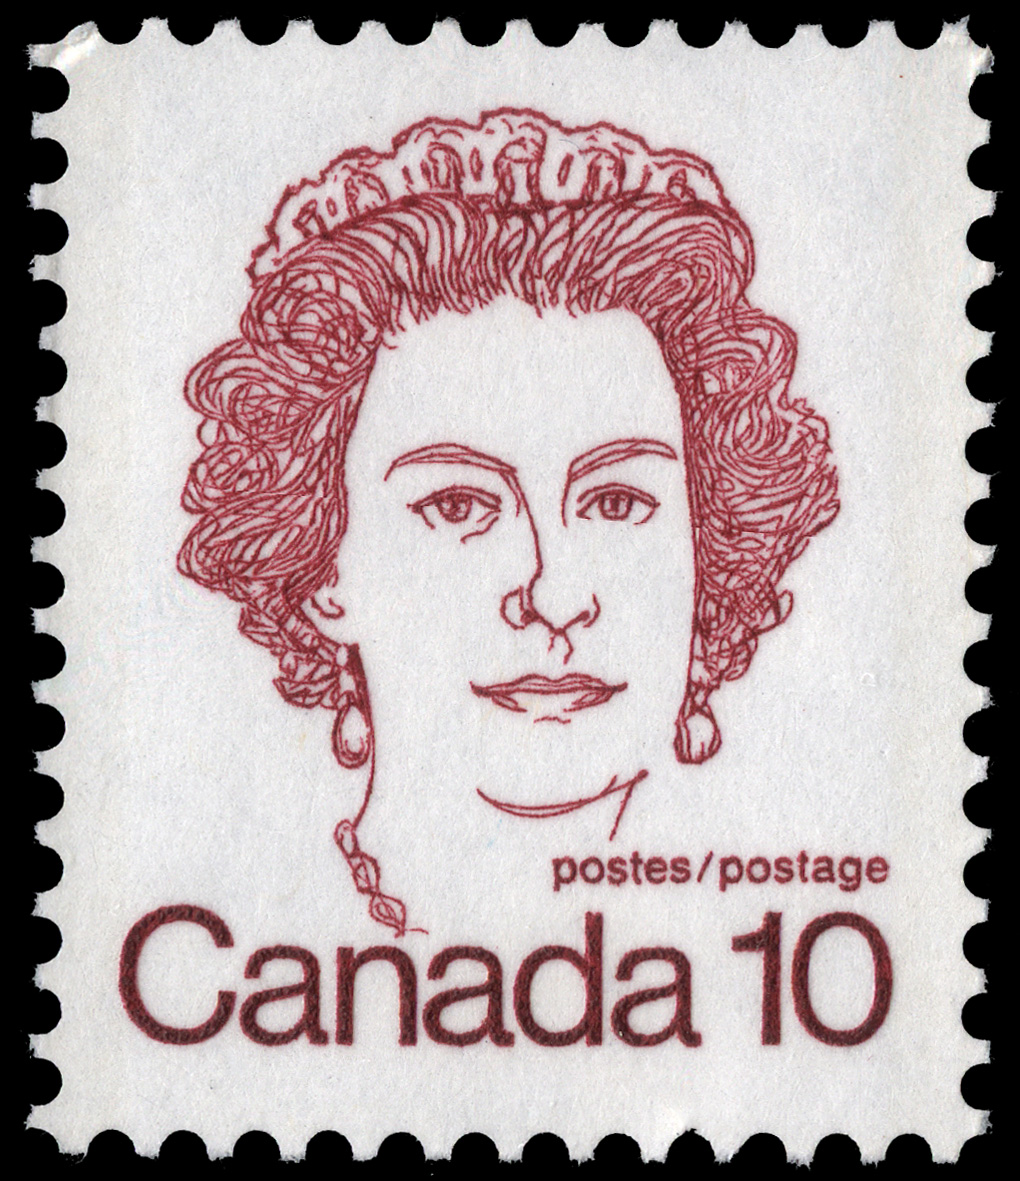 Queen Elizabeth II Canada Postage Stamp | Caricature Definitives